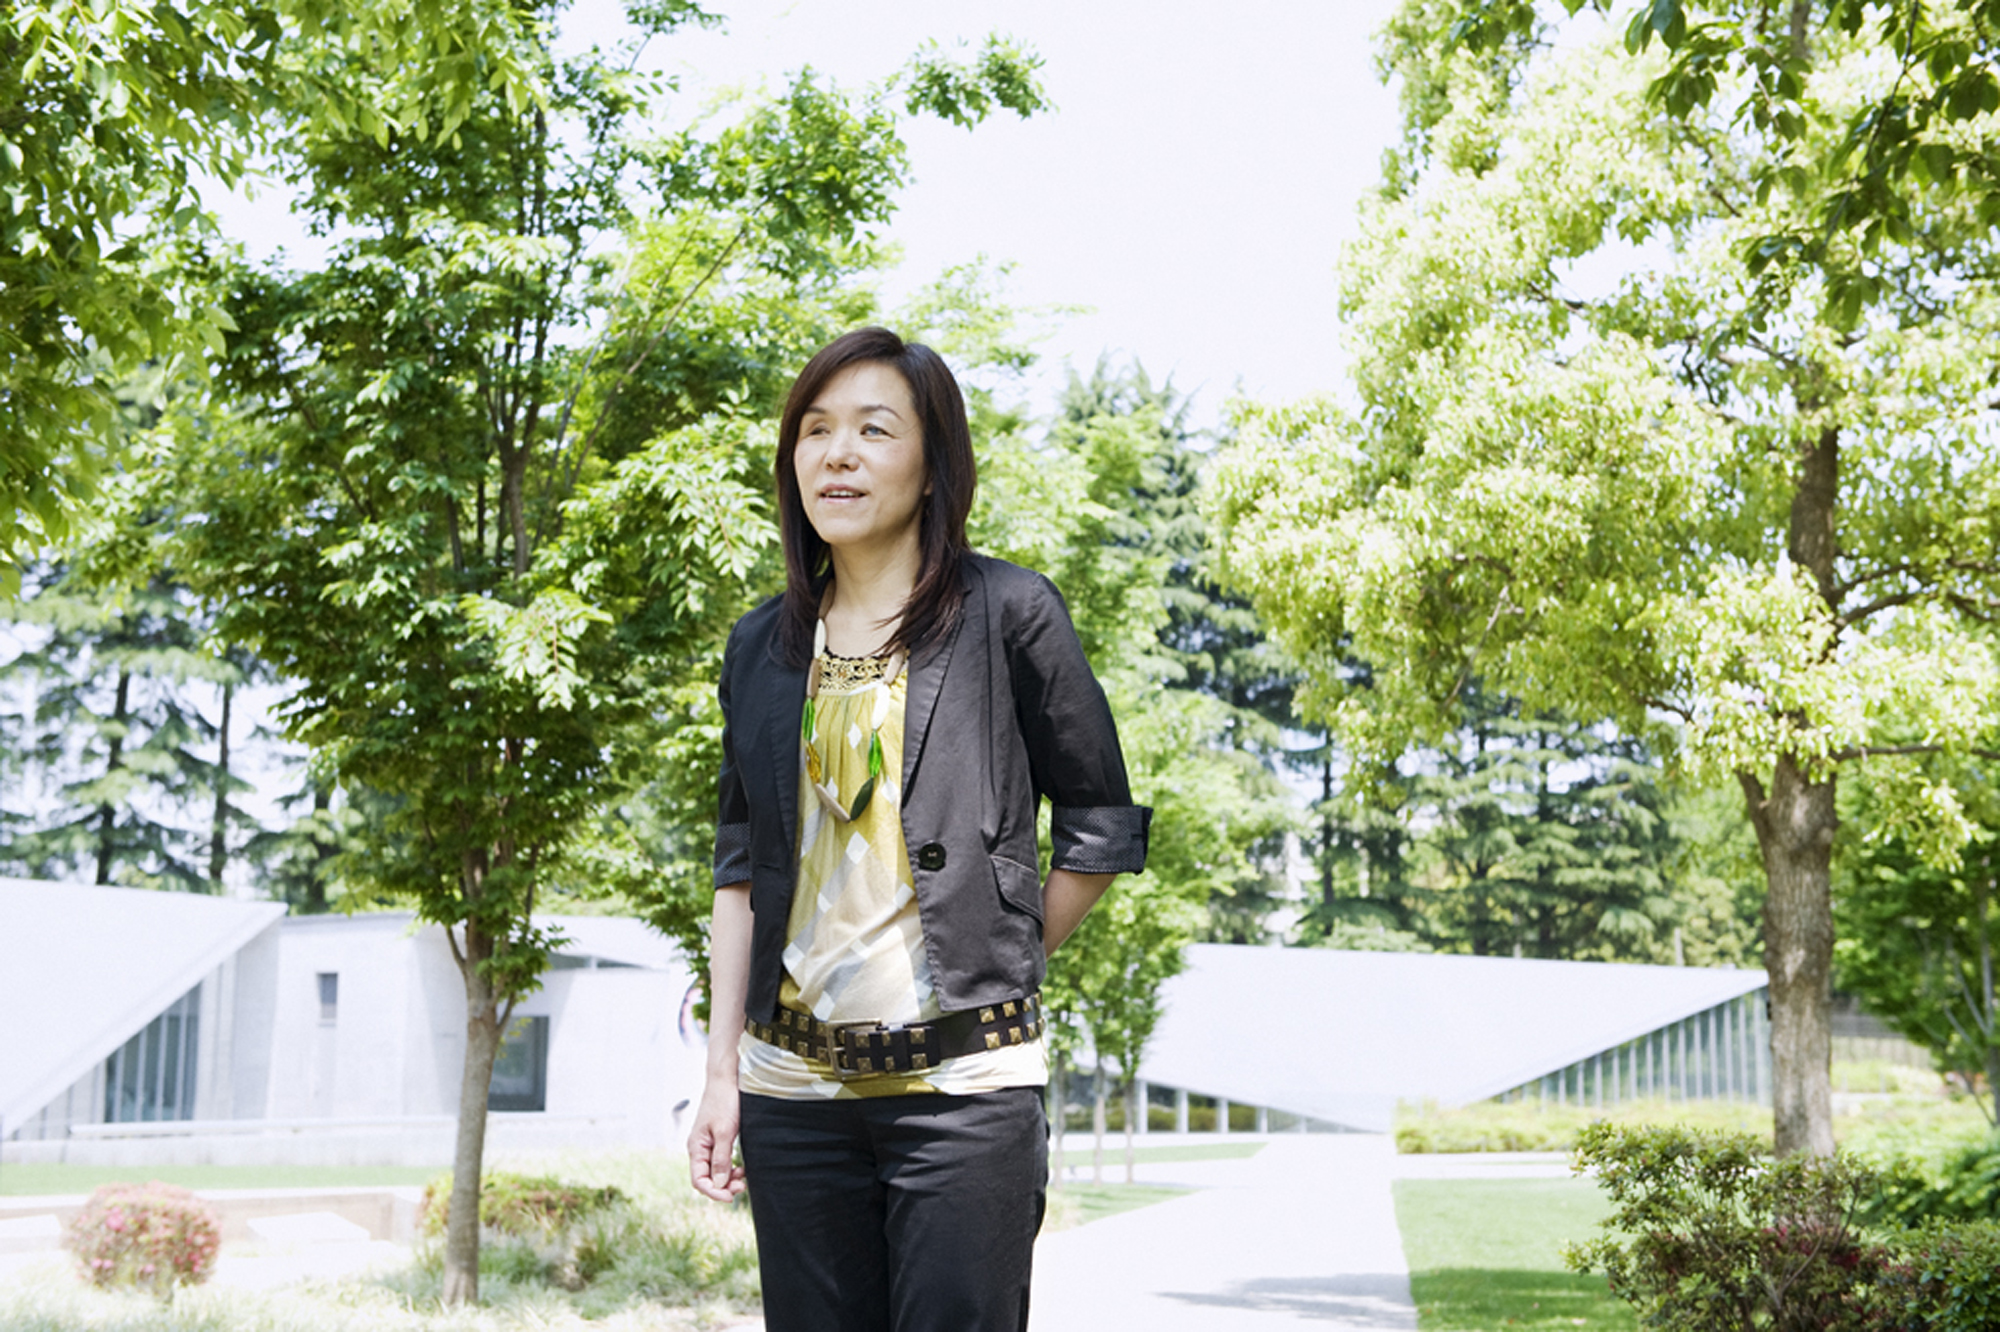 Chieko Asakawa, an Osaka-born computer scientist, is among 19 innovators who will be inducted into the U.S. National Inventors Hall of Fame in Washington in May. | COURTESY OF IBM